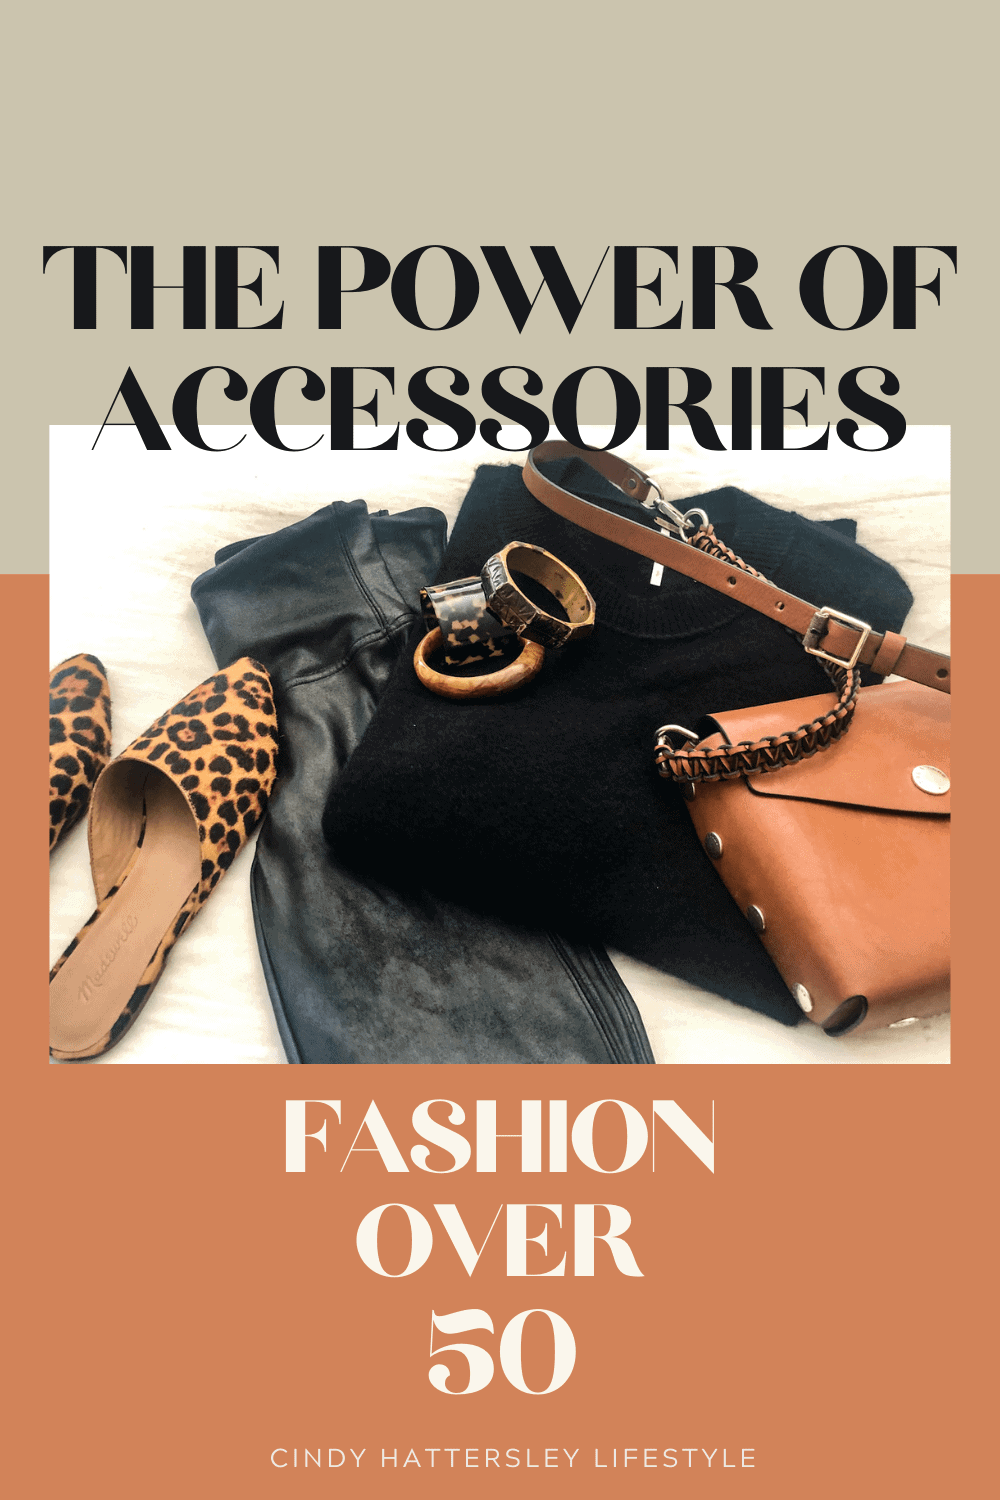 THE POWER OF ACCESSORIES cindy hattersley blog